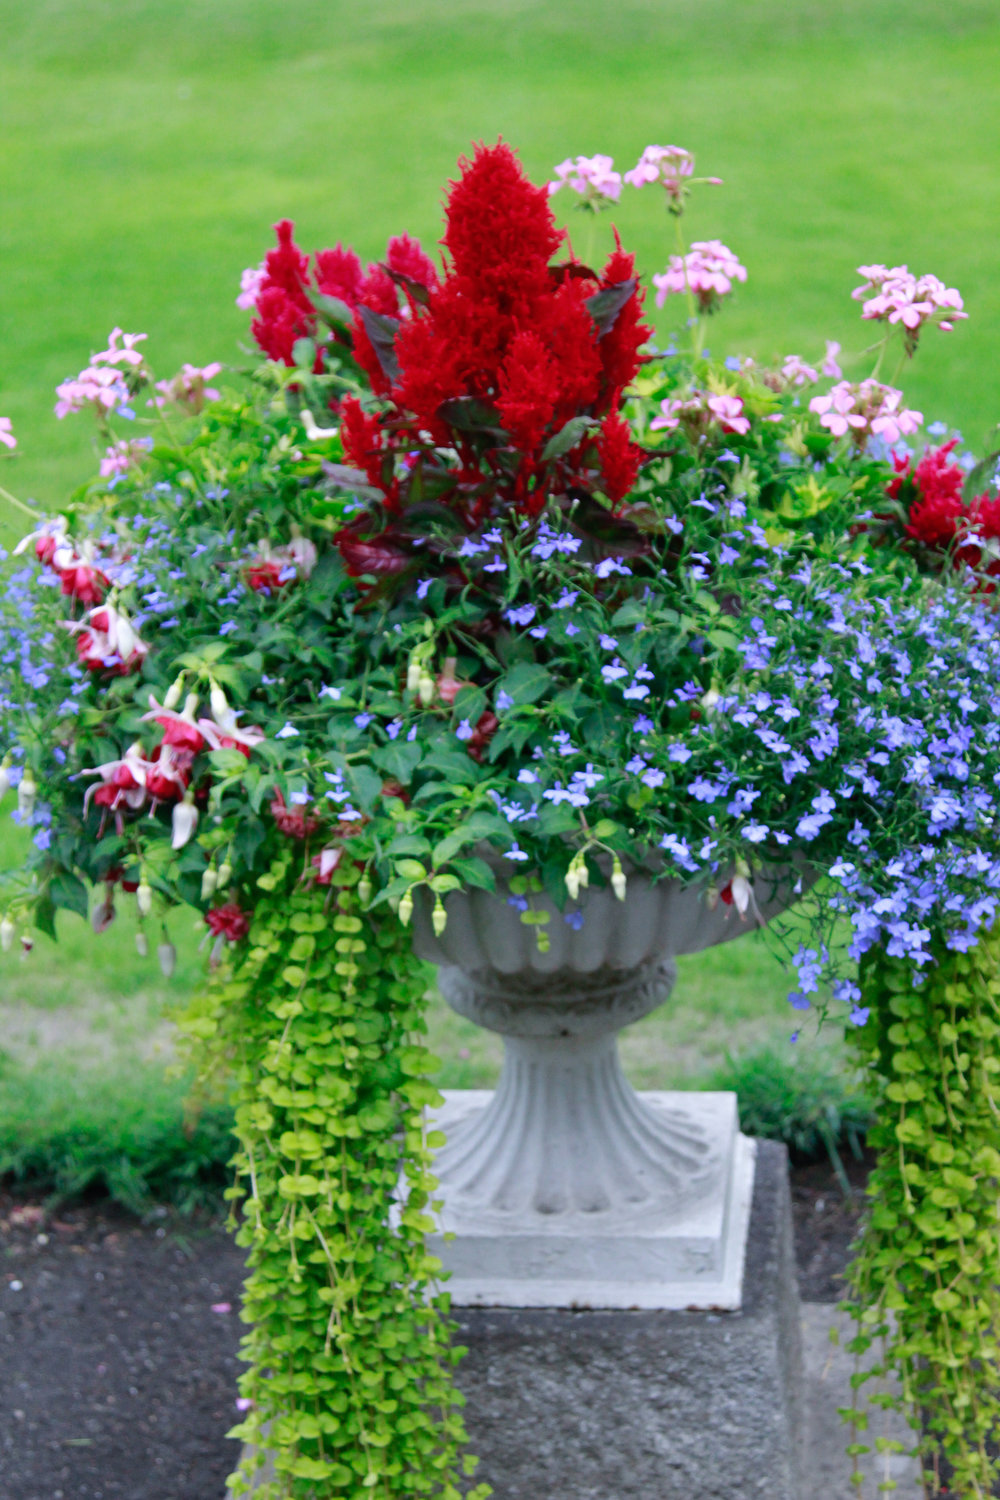 Floral arrangement in St Stephen's Green, Dublin